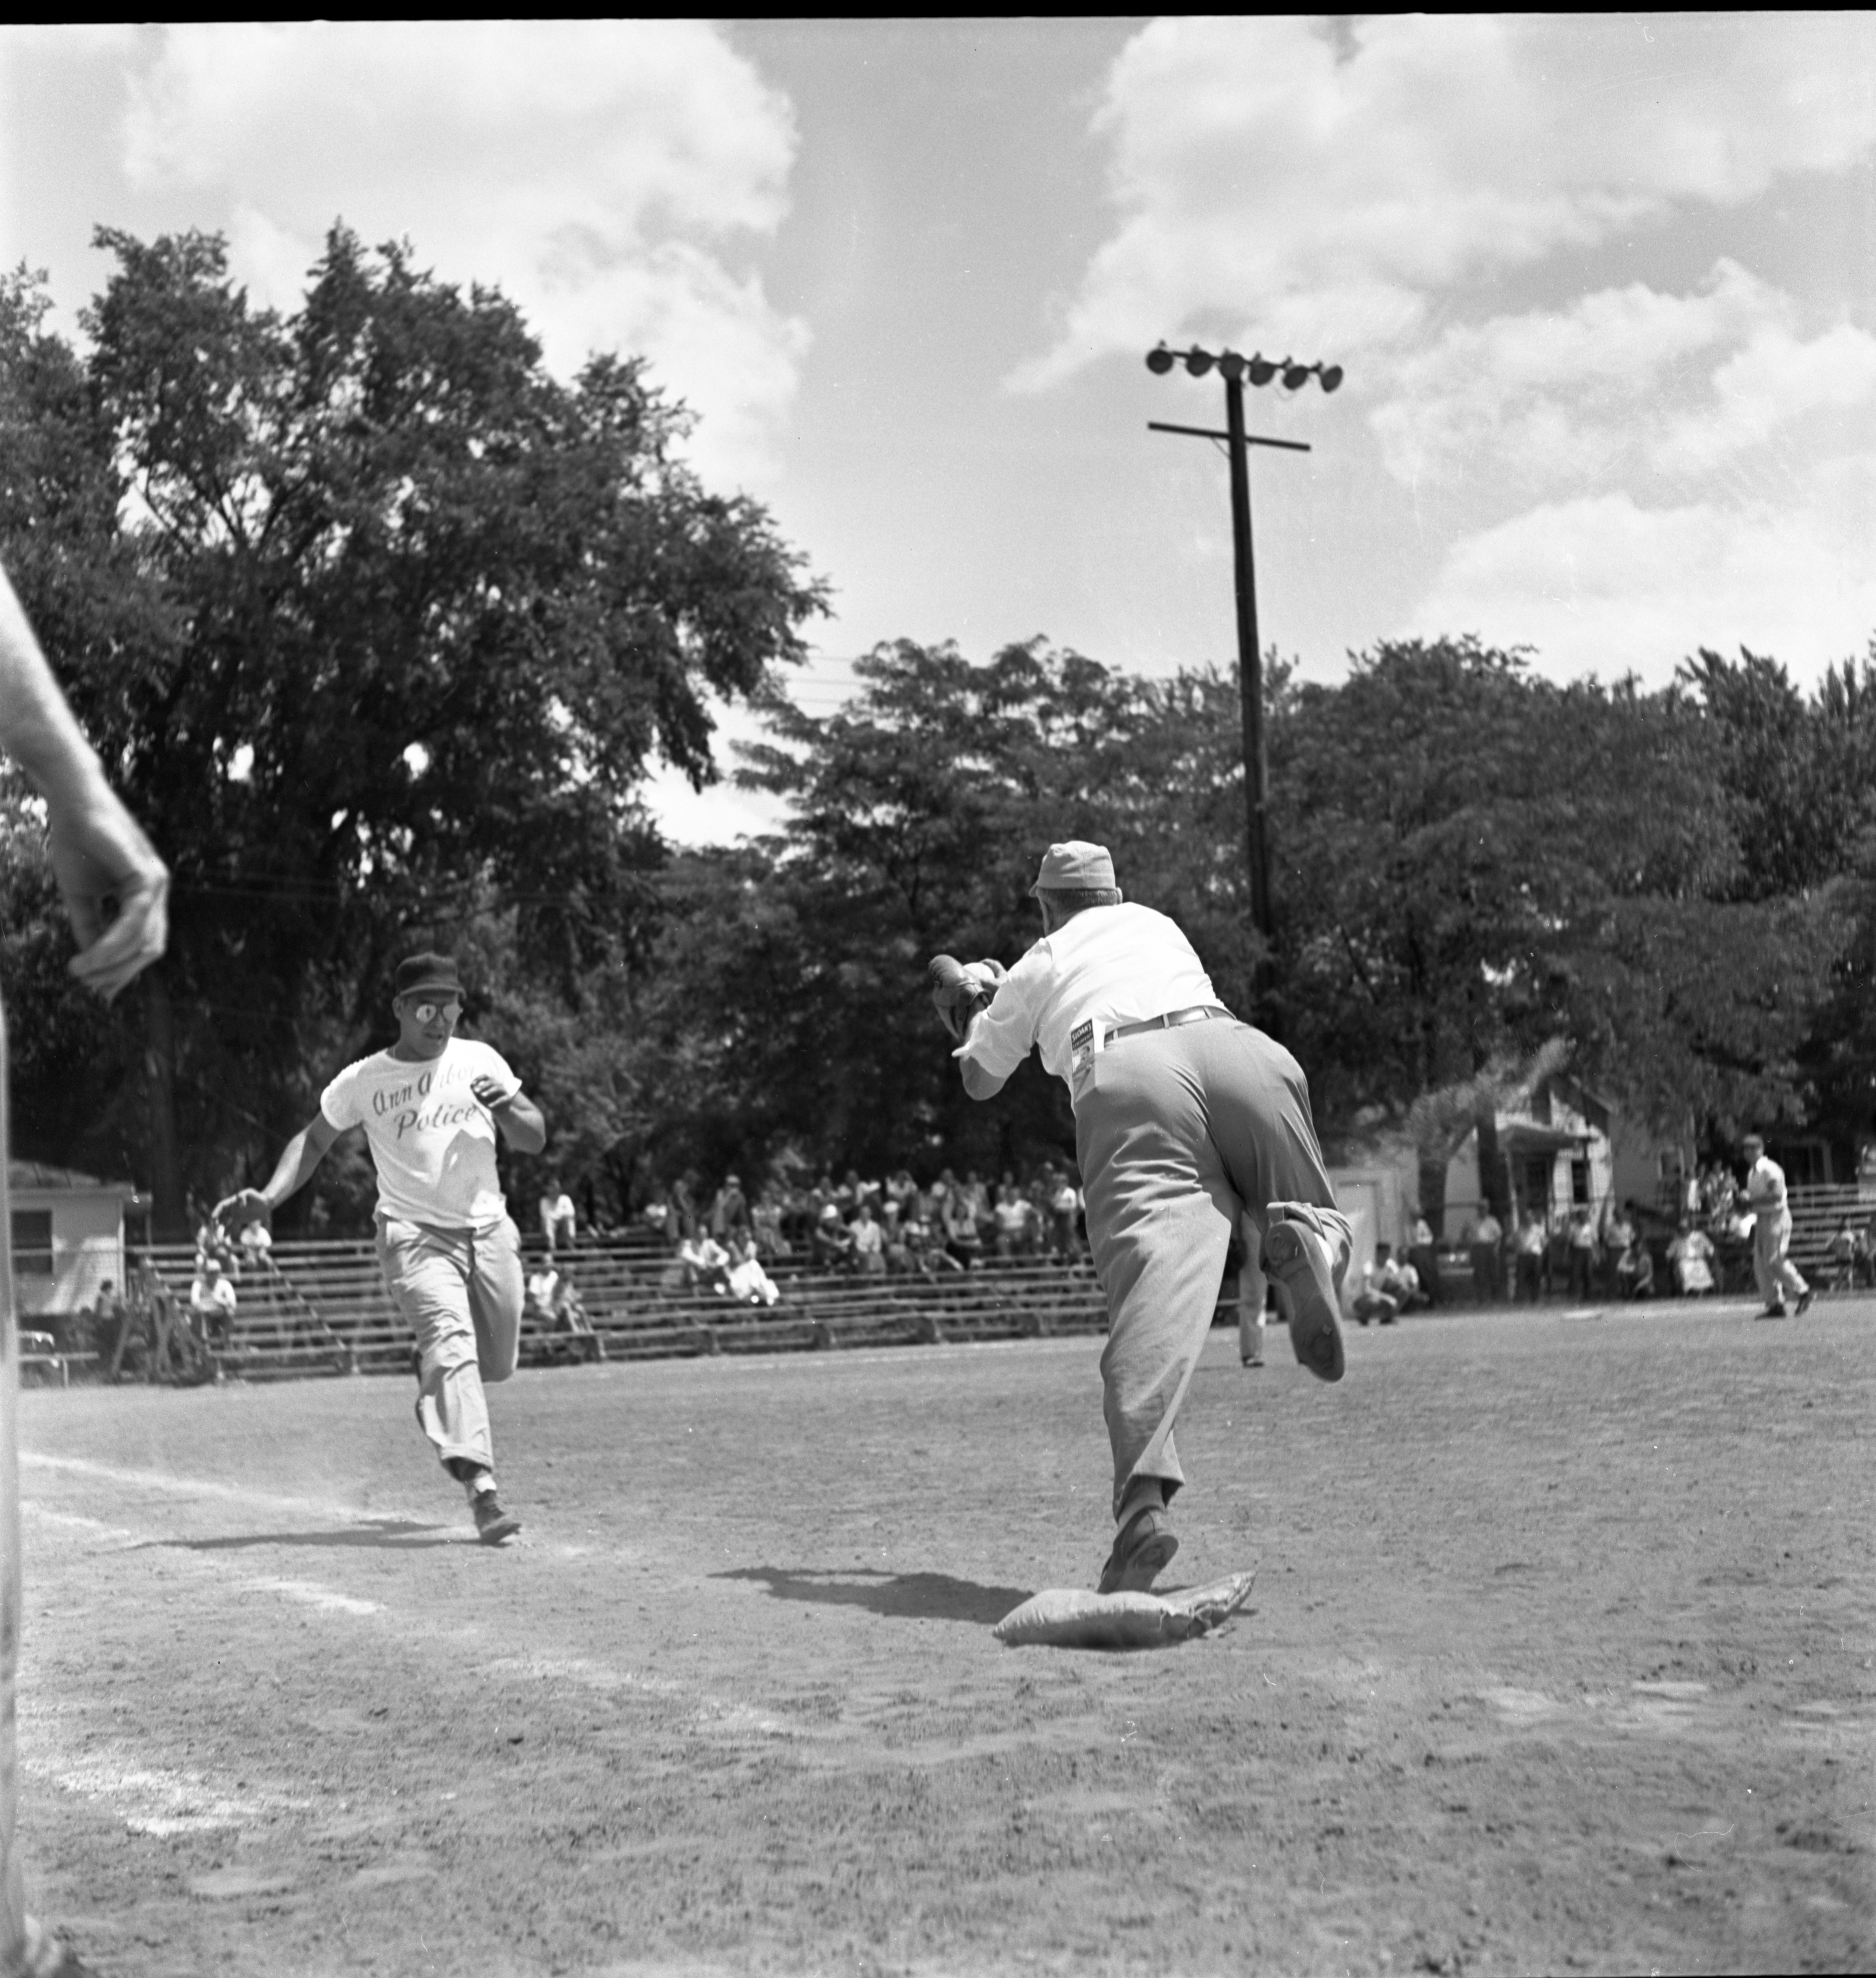 H. H. Caswell & John Spalding Meet On First Base At The City Council Vs. Police Softball Game, July 1953 image